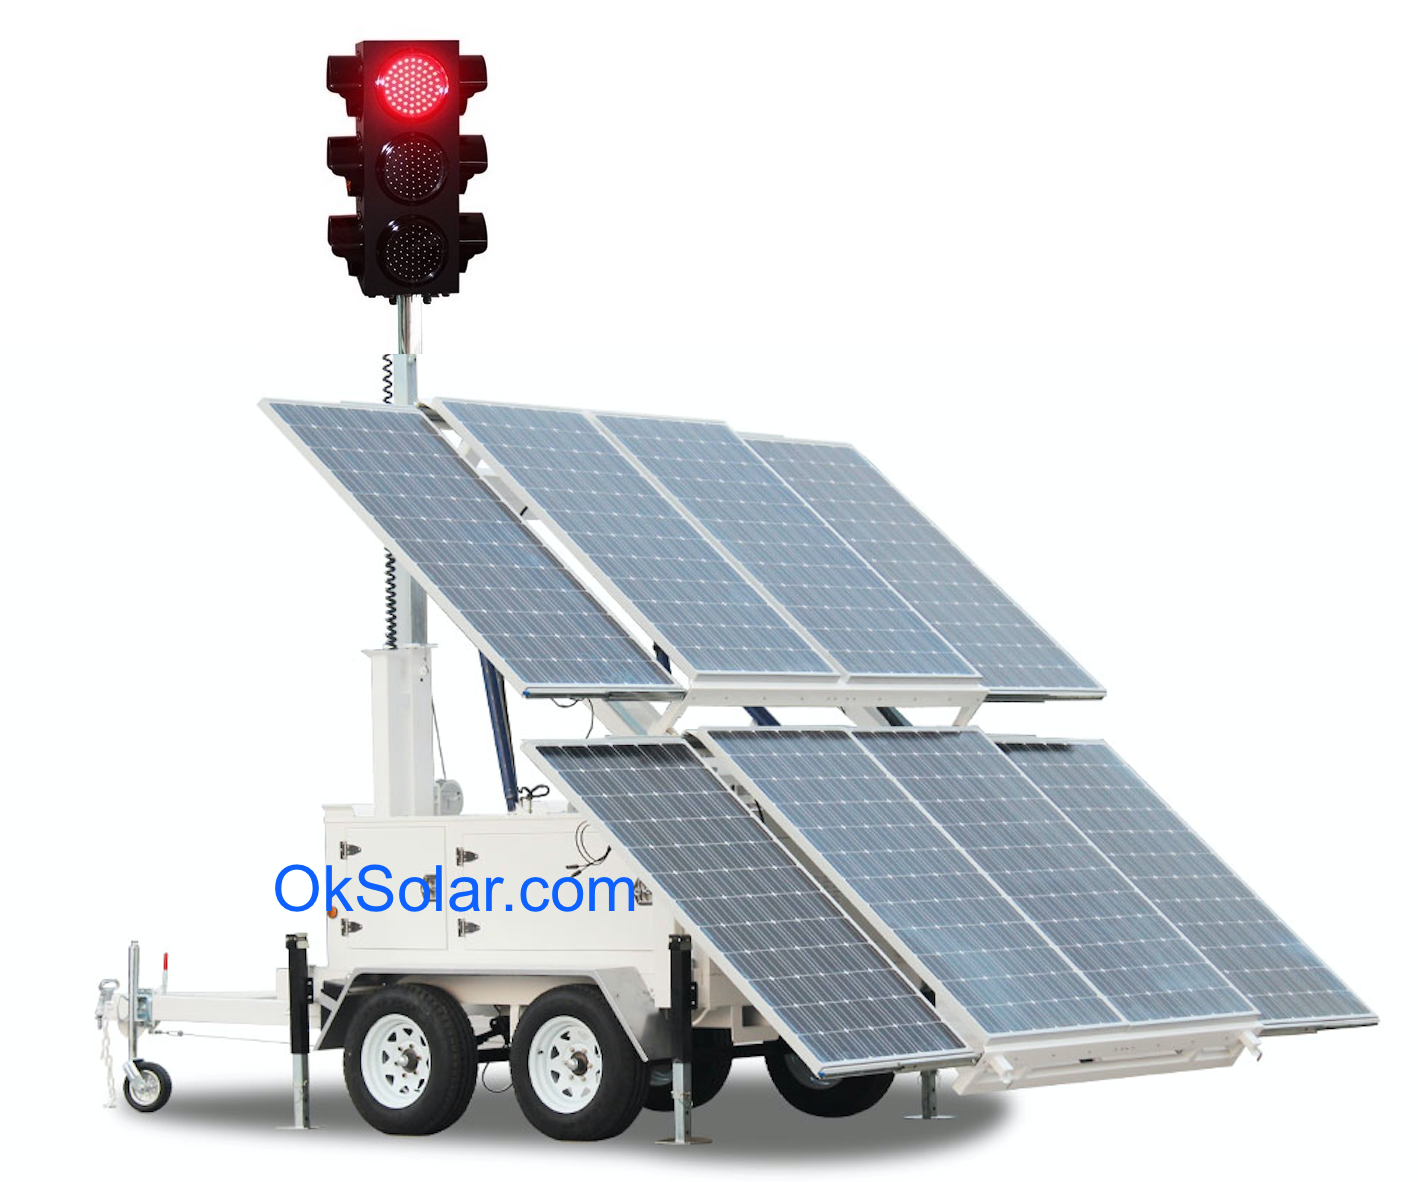 Solar Traffic Lights 4 Ways Traffic Signal Control, Solar Powered Traffic Warning Light, 4 Way Traffic Signal control, Remote Control Portable Traffic Signal Lights, temporary four ways solar traffic light.